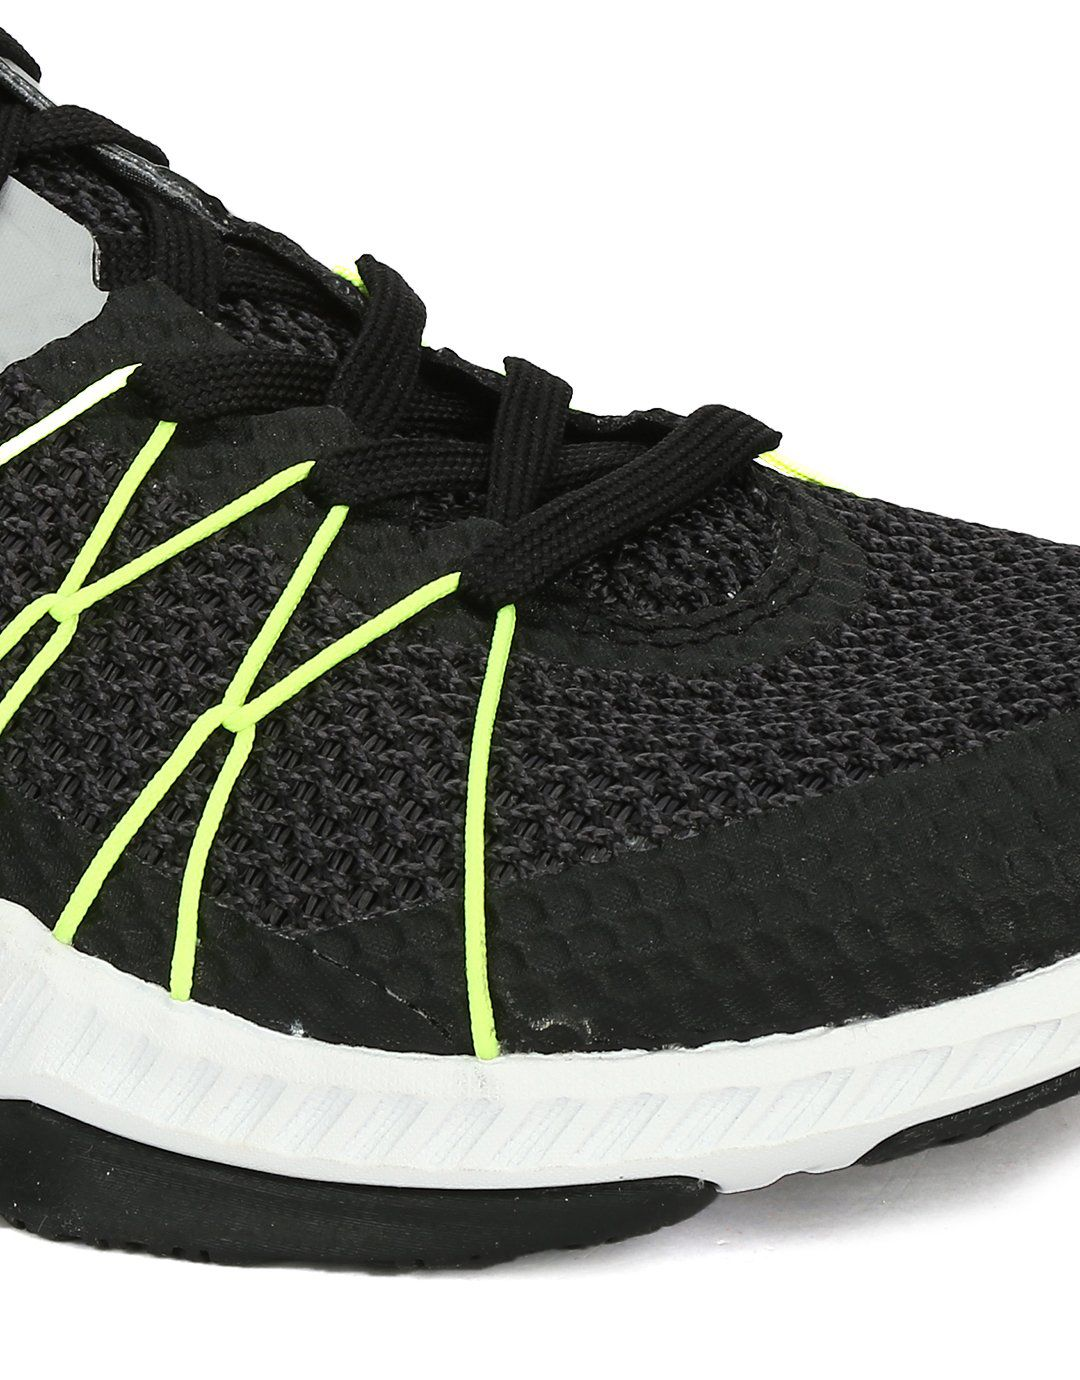 779f0241271008 Nike Zoom Train Incredibly Fast Multi Color Training Shoes - Buy ...